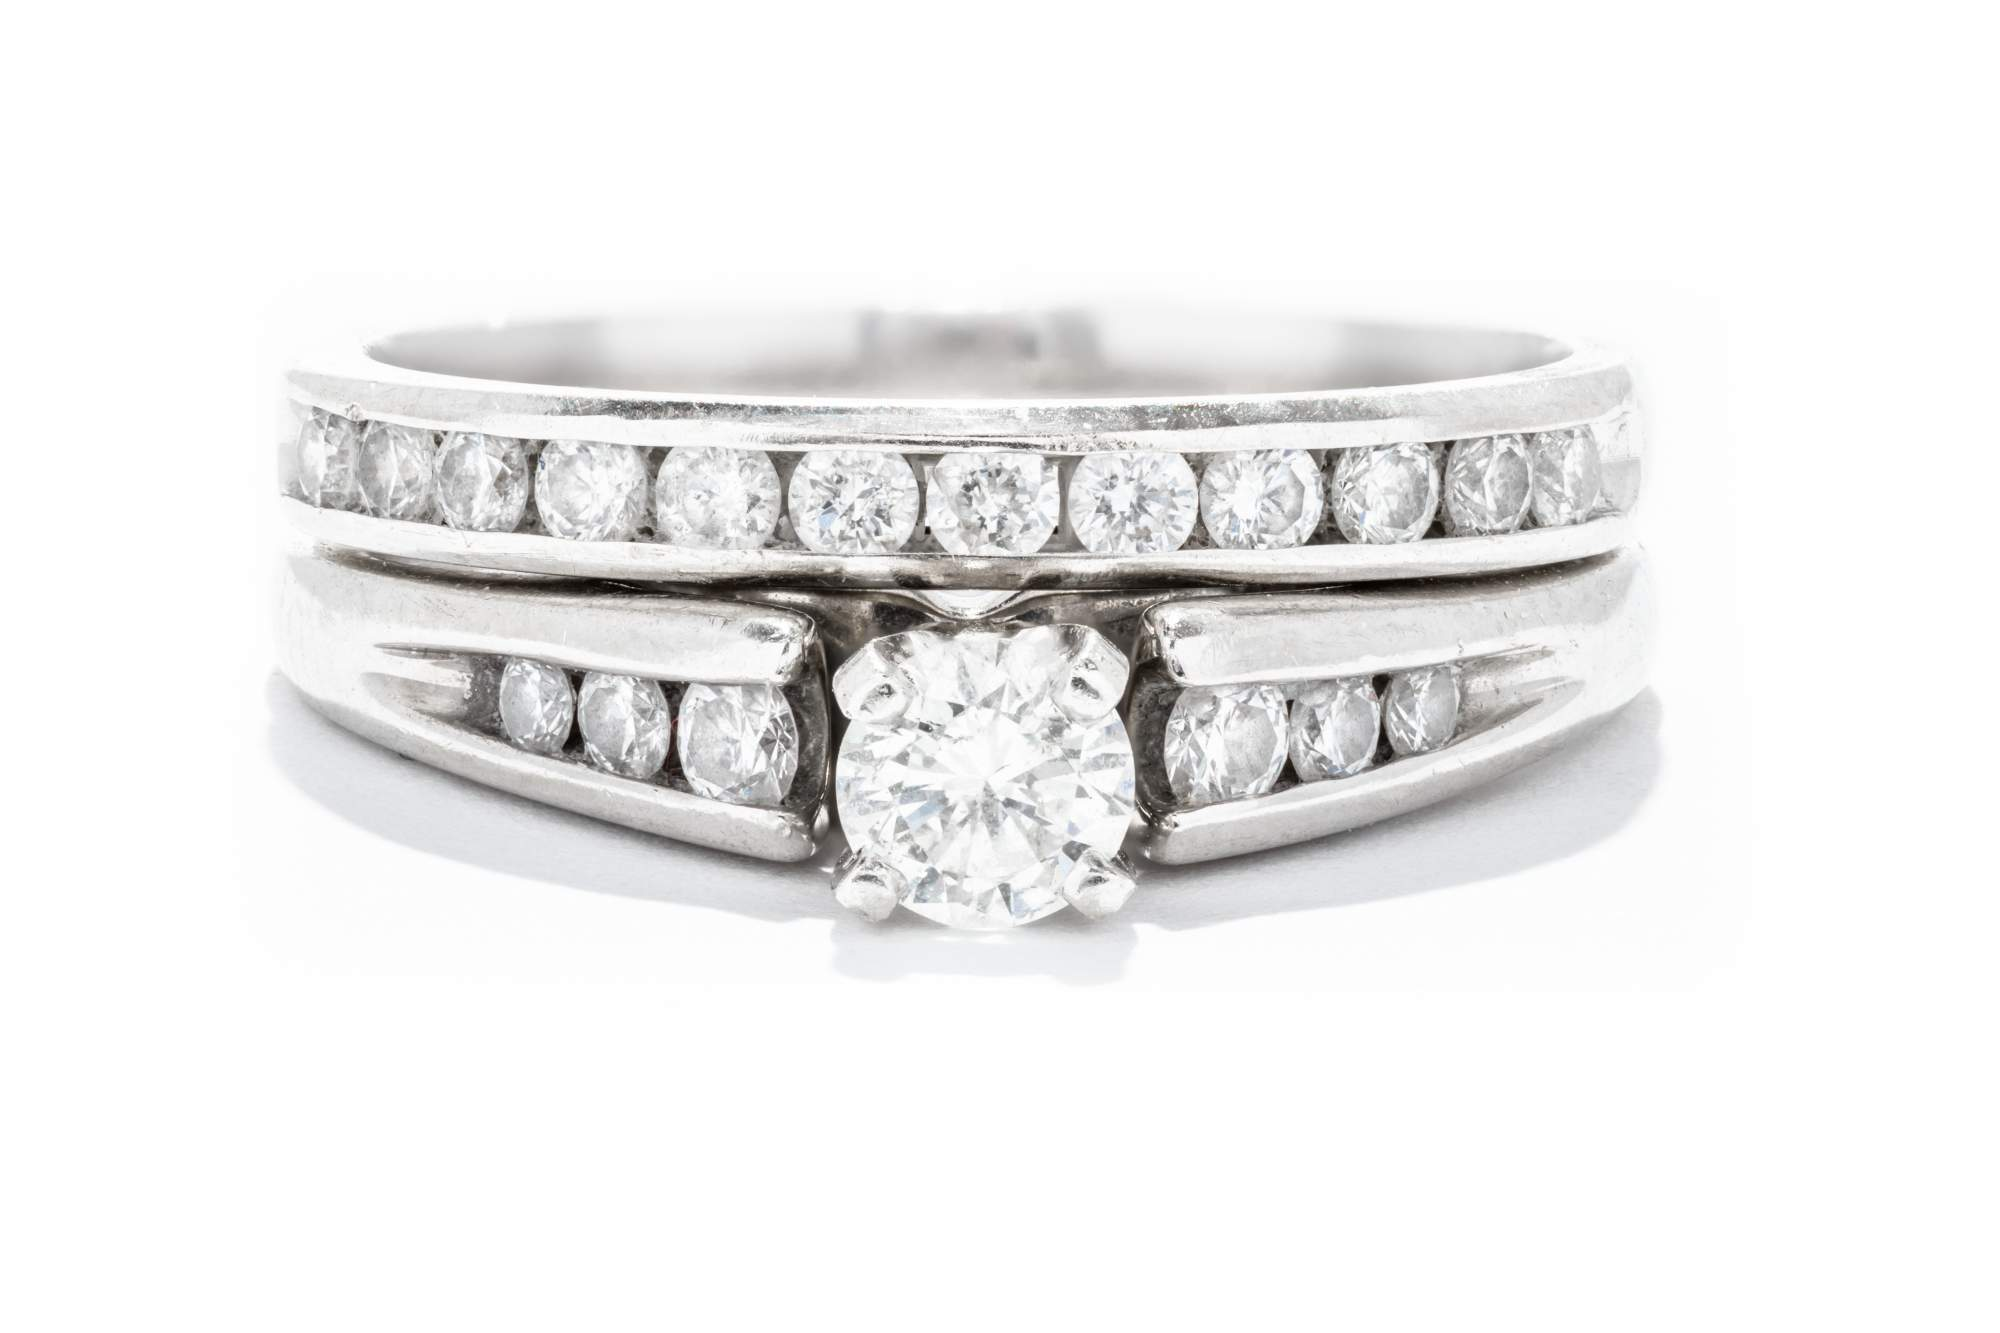 1ee6253cb5 Adele Diamond 14K White Gold Vintage Channel Set Engagement Ring with  Matching Band